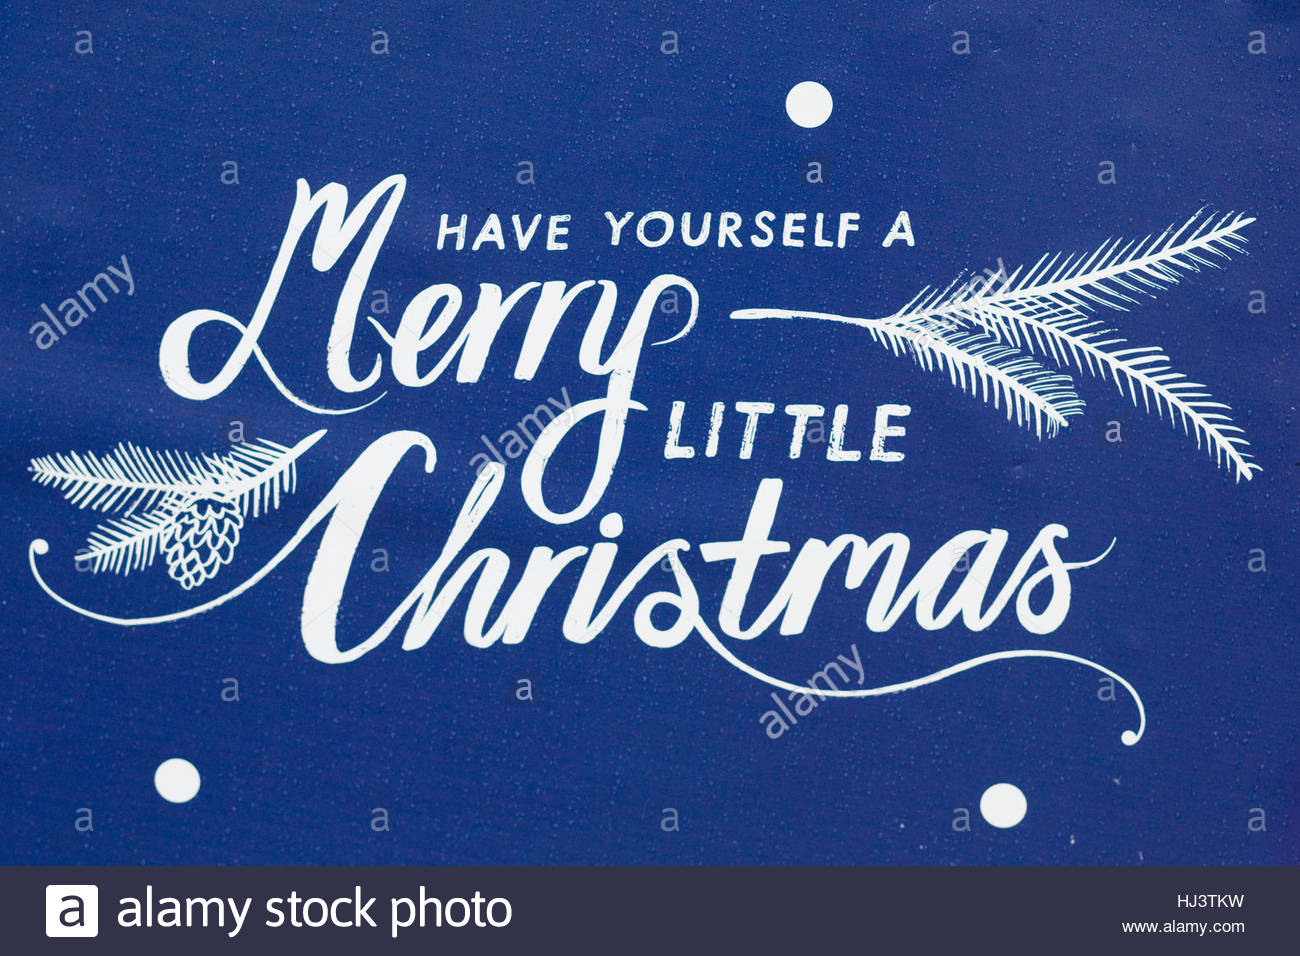 have yourself a merry little christmas sign stock image - Have Yourself A Very Merry Christmas